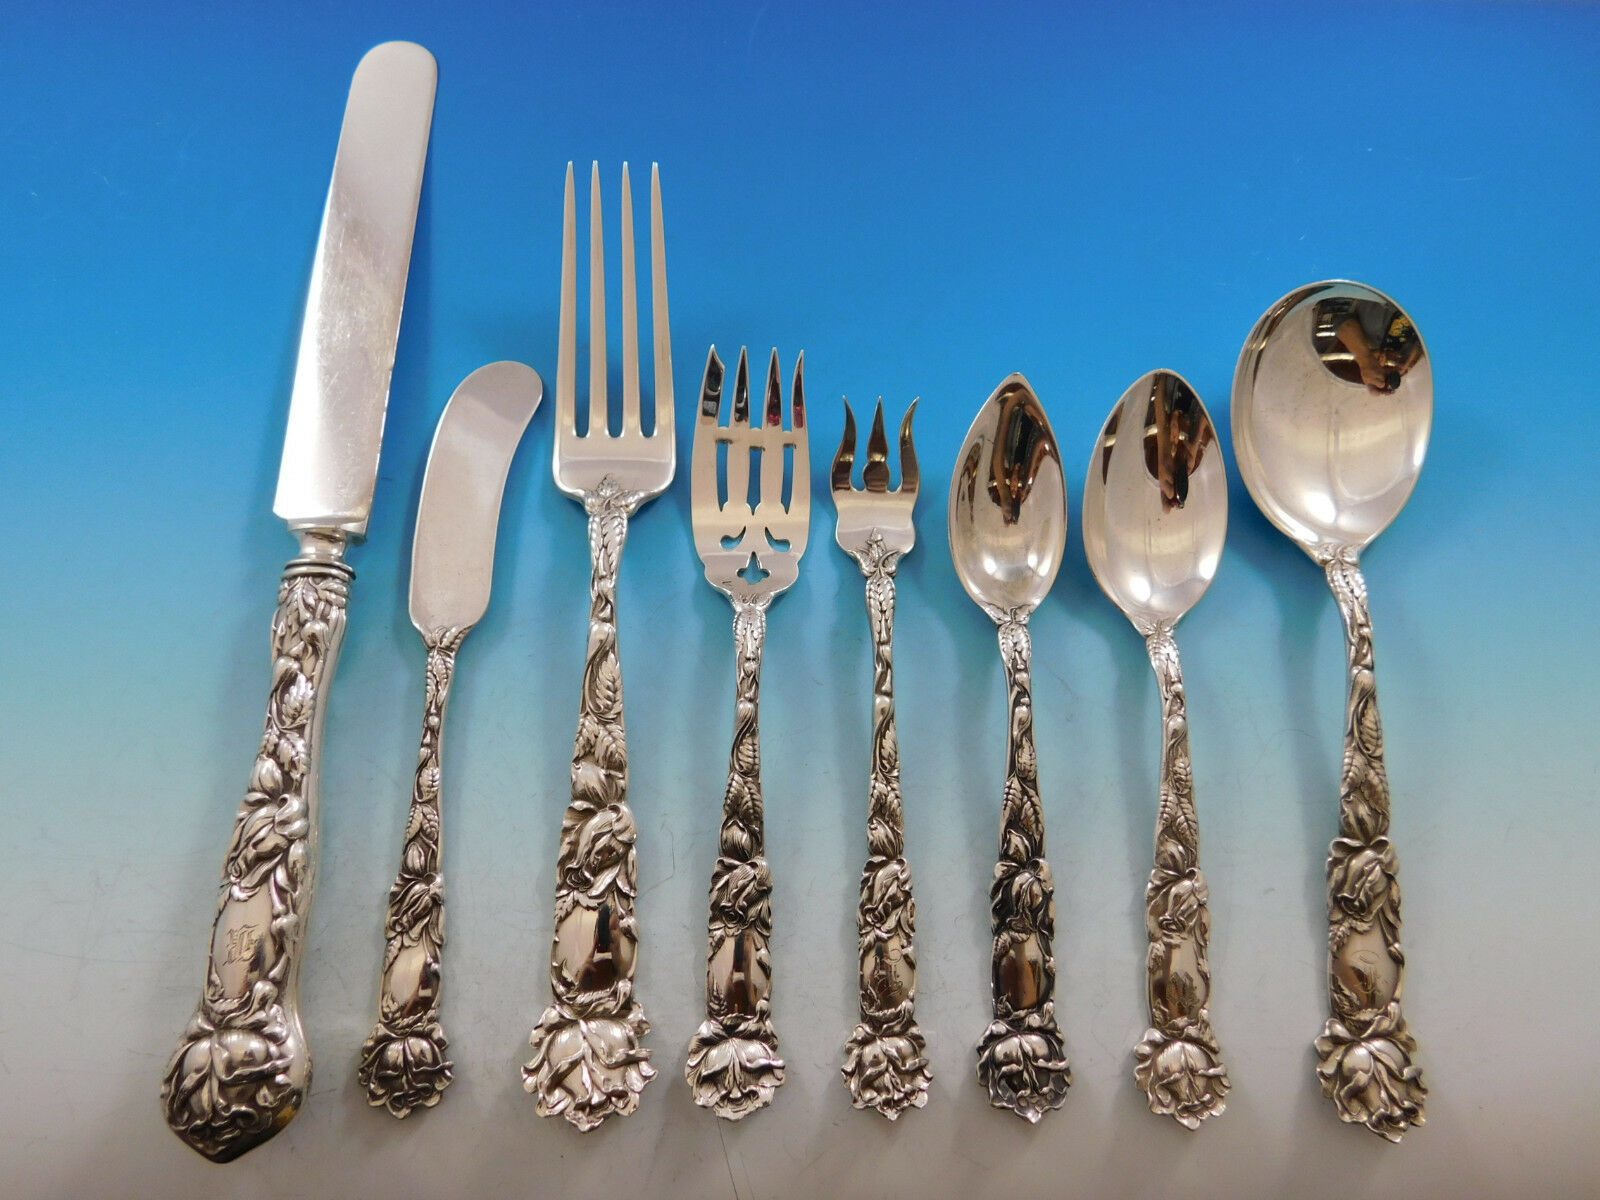 Primary image for Bridal Rose by Alvin Sterling Silver Flatware Set Service 98 Pieces Dinner Size